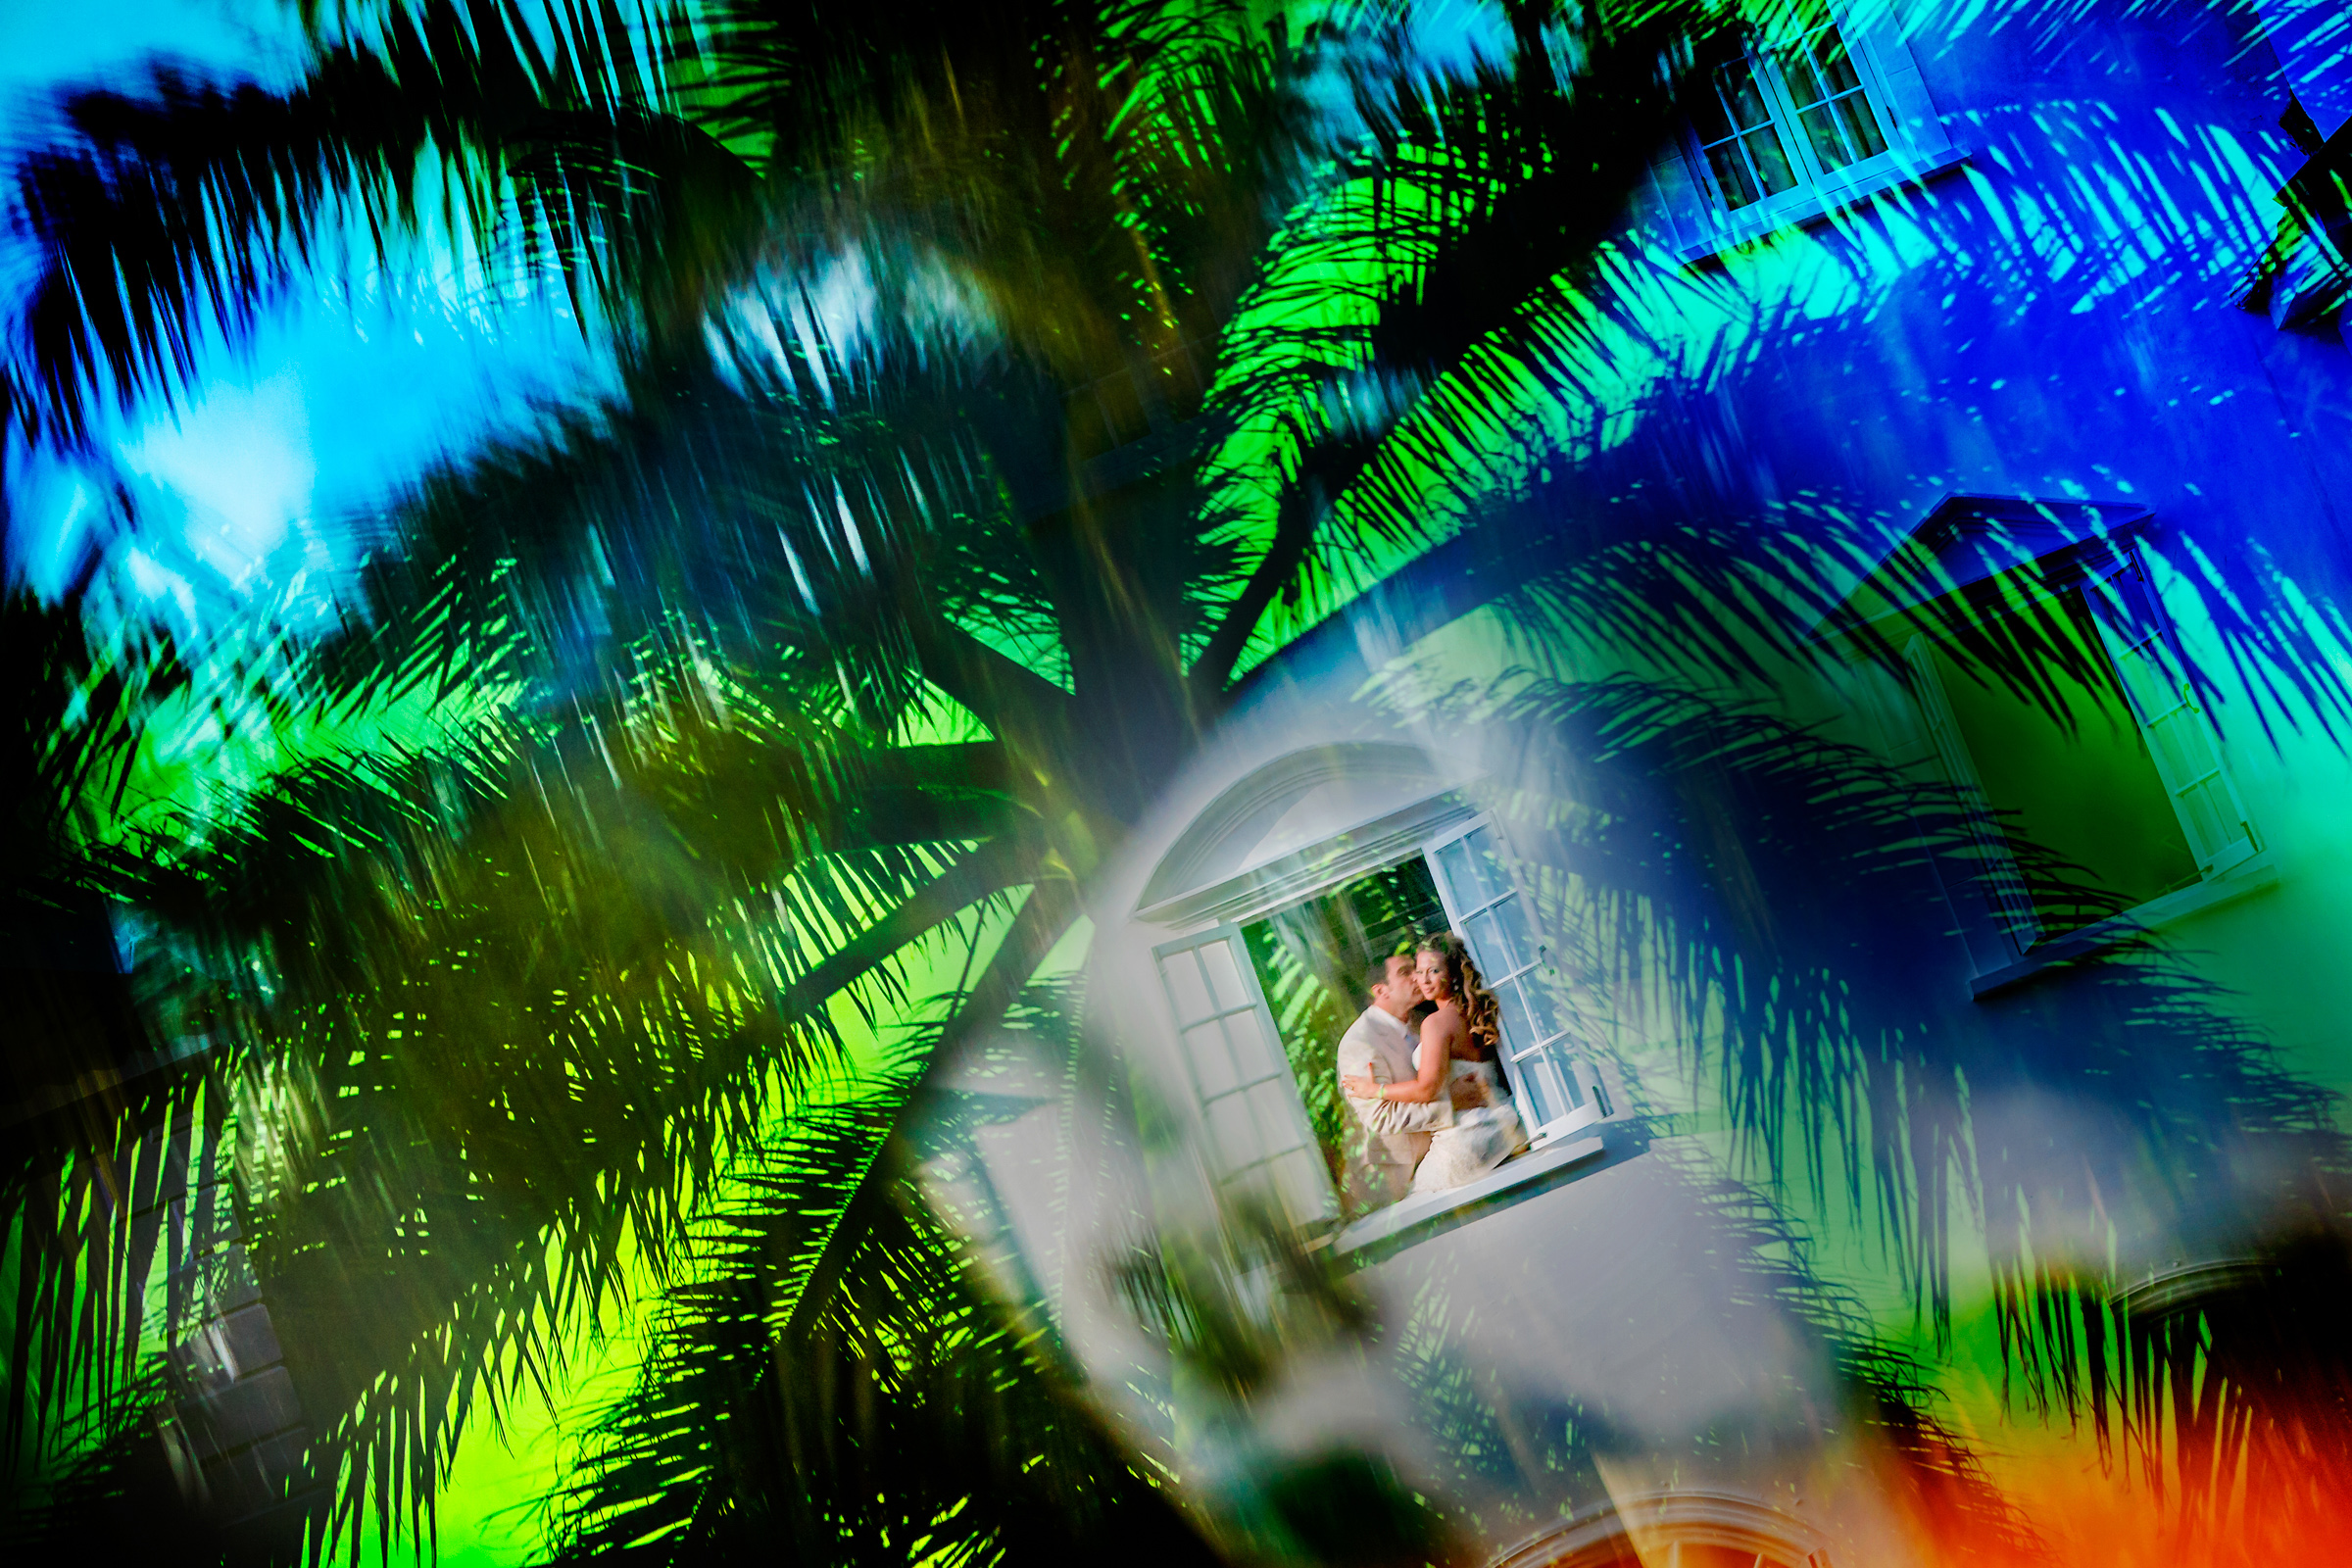 Bride and groom portrait reflection on window against palm trees  - photo by Chrisman Studios